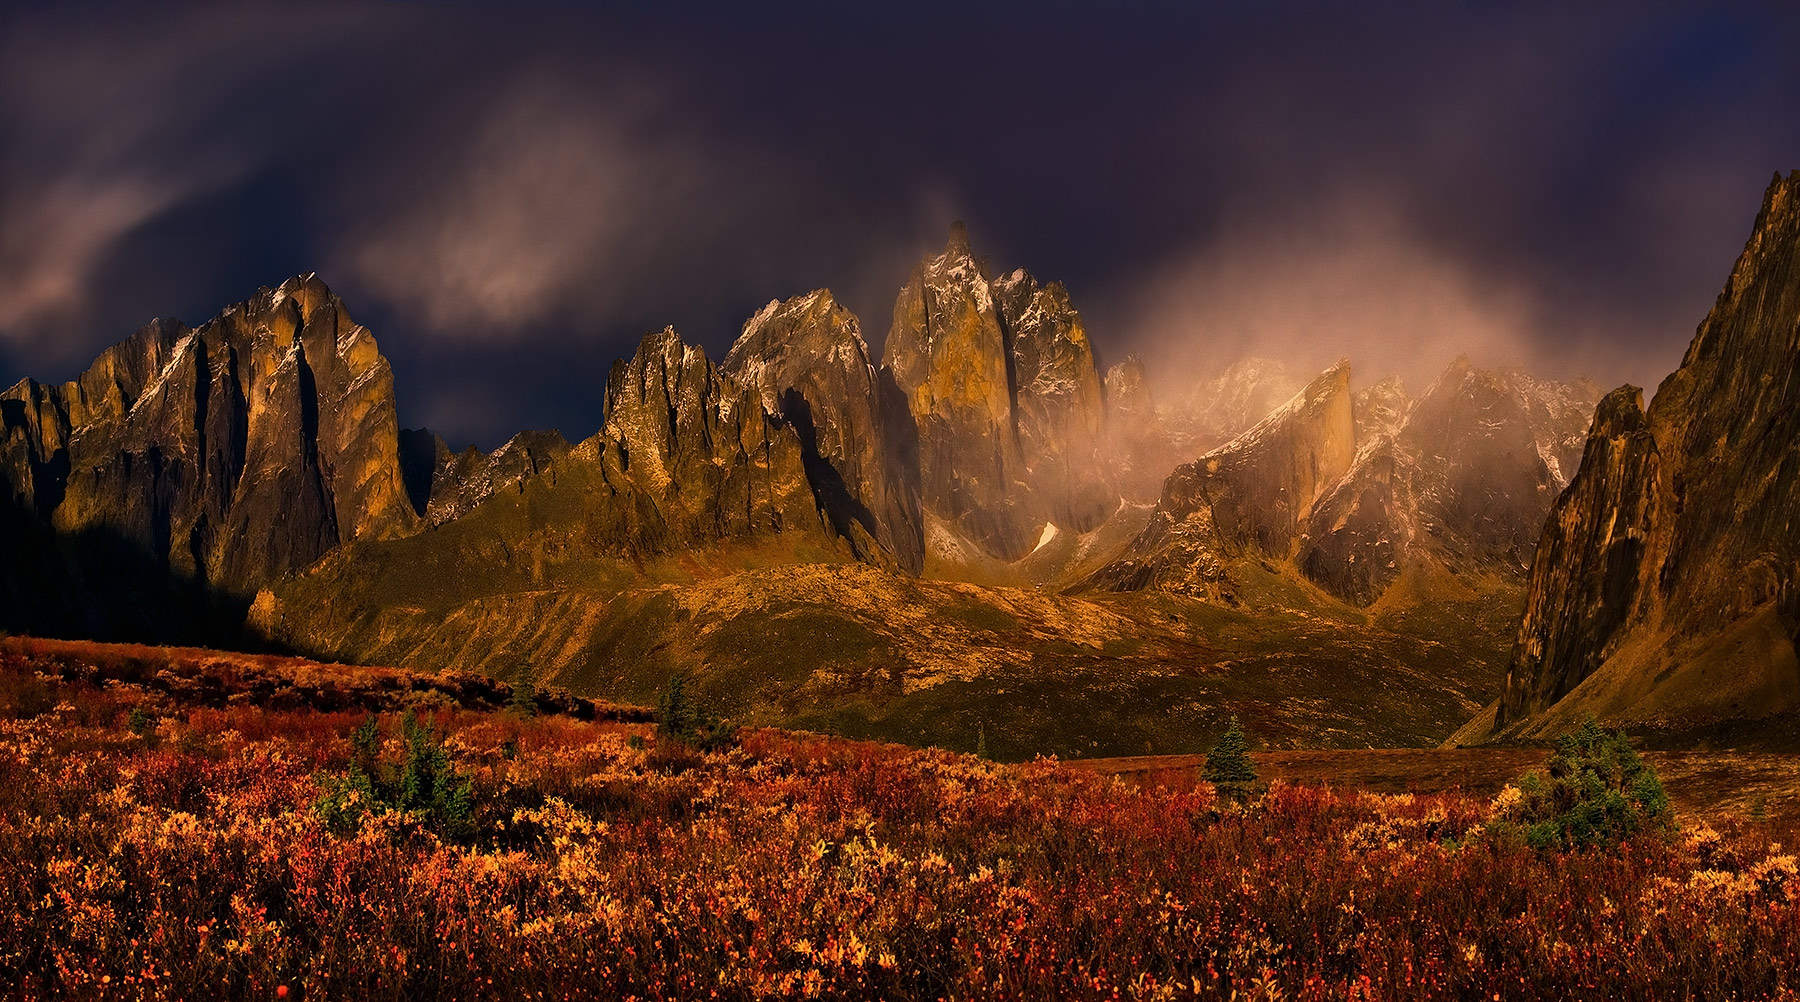 Dramatic light over the great peaks of the Ogilvie Mountains amidst rich Autumn colors. Yukon territory, Canada. The photograph...